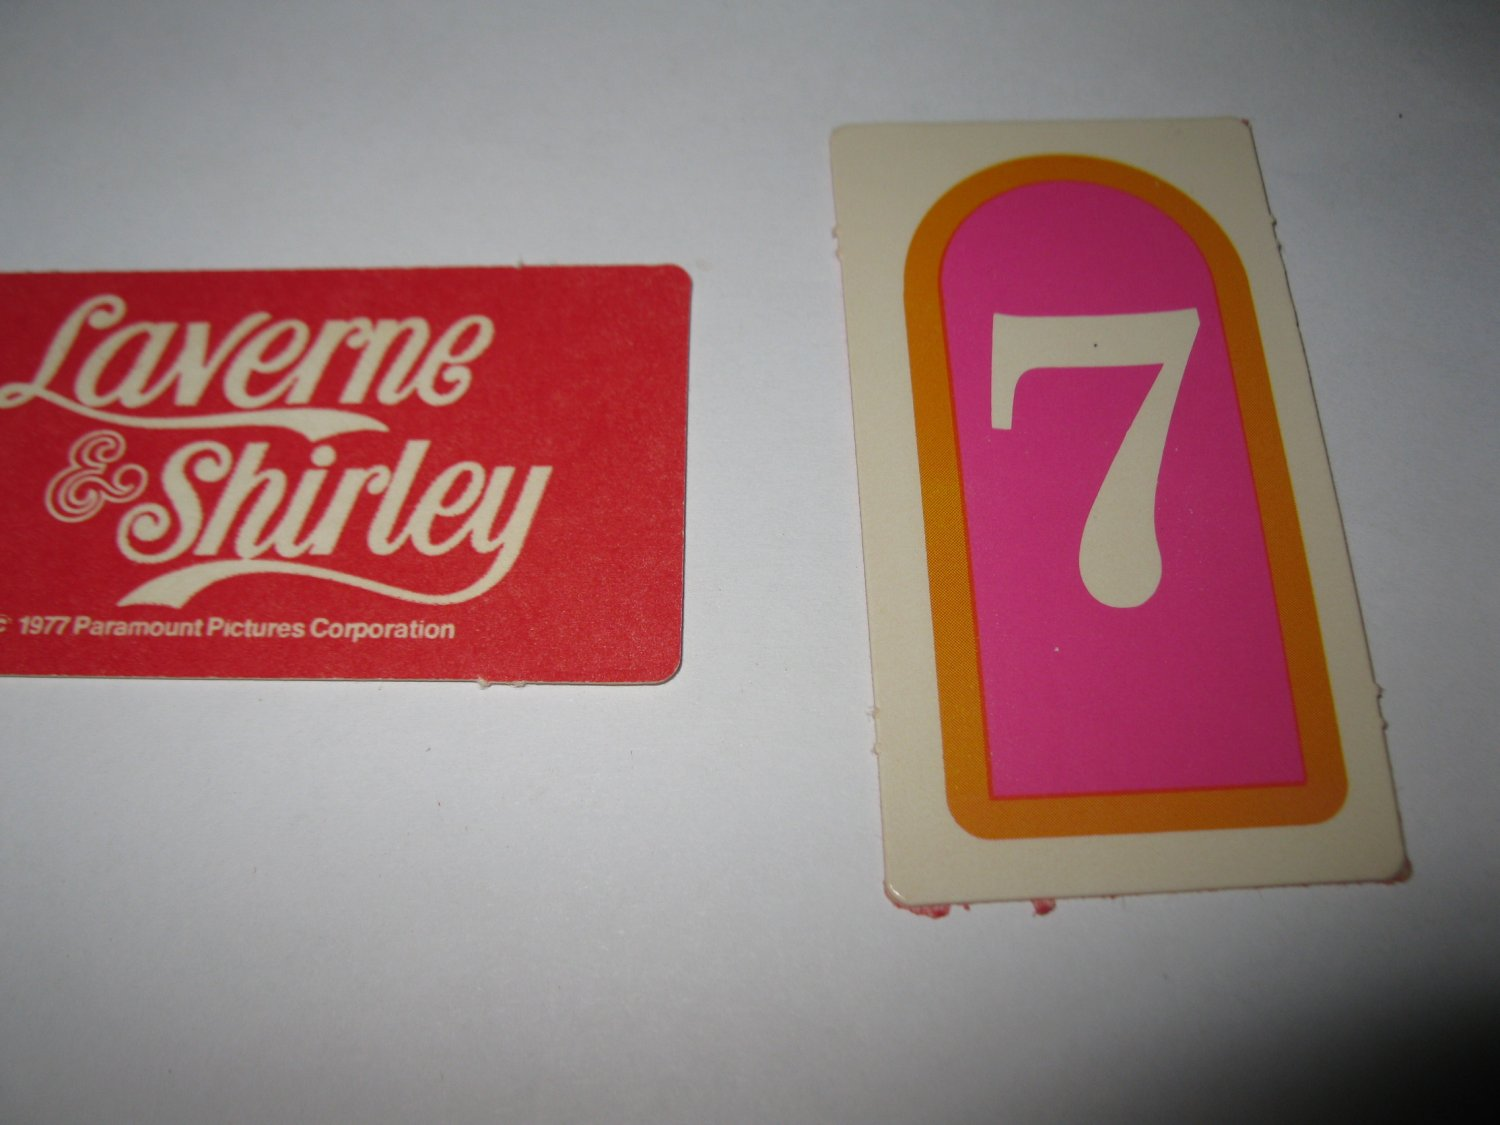 1977 Laverne & Shirley Board Game Piece: single Game Card #7